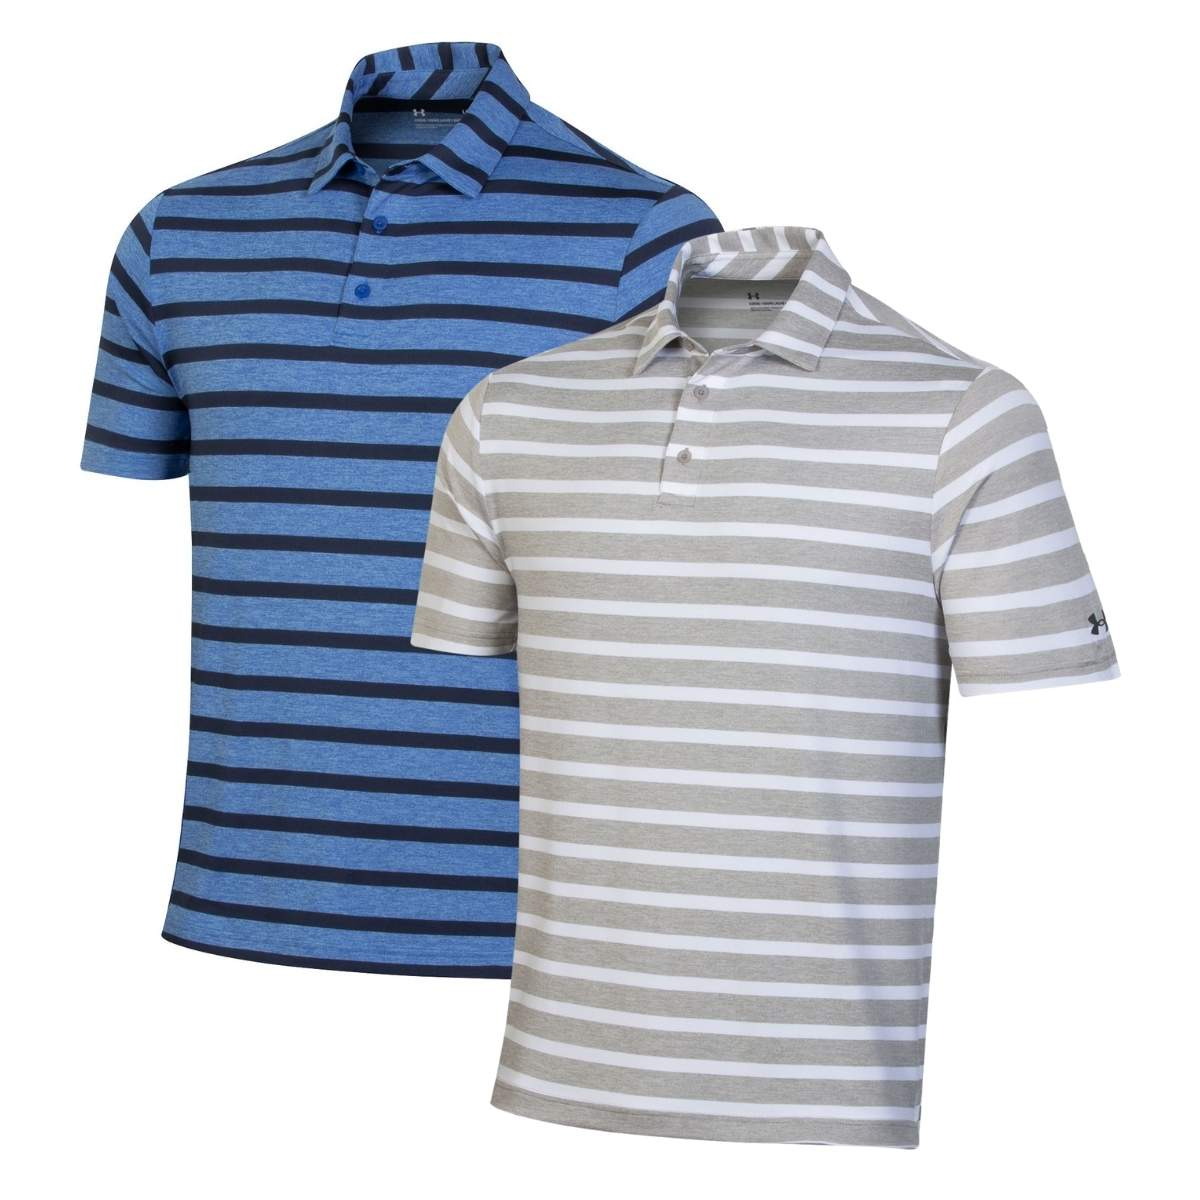 Under Armour Men's 2021 Playoff 2.0 Back Nine Stripe Polo